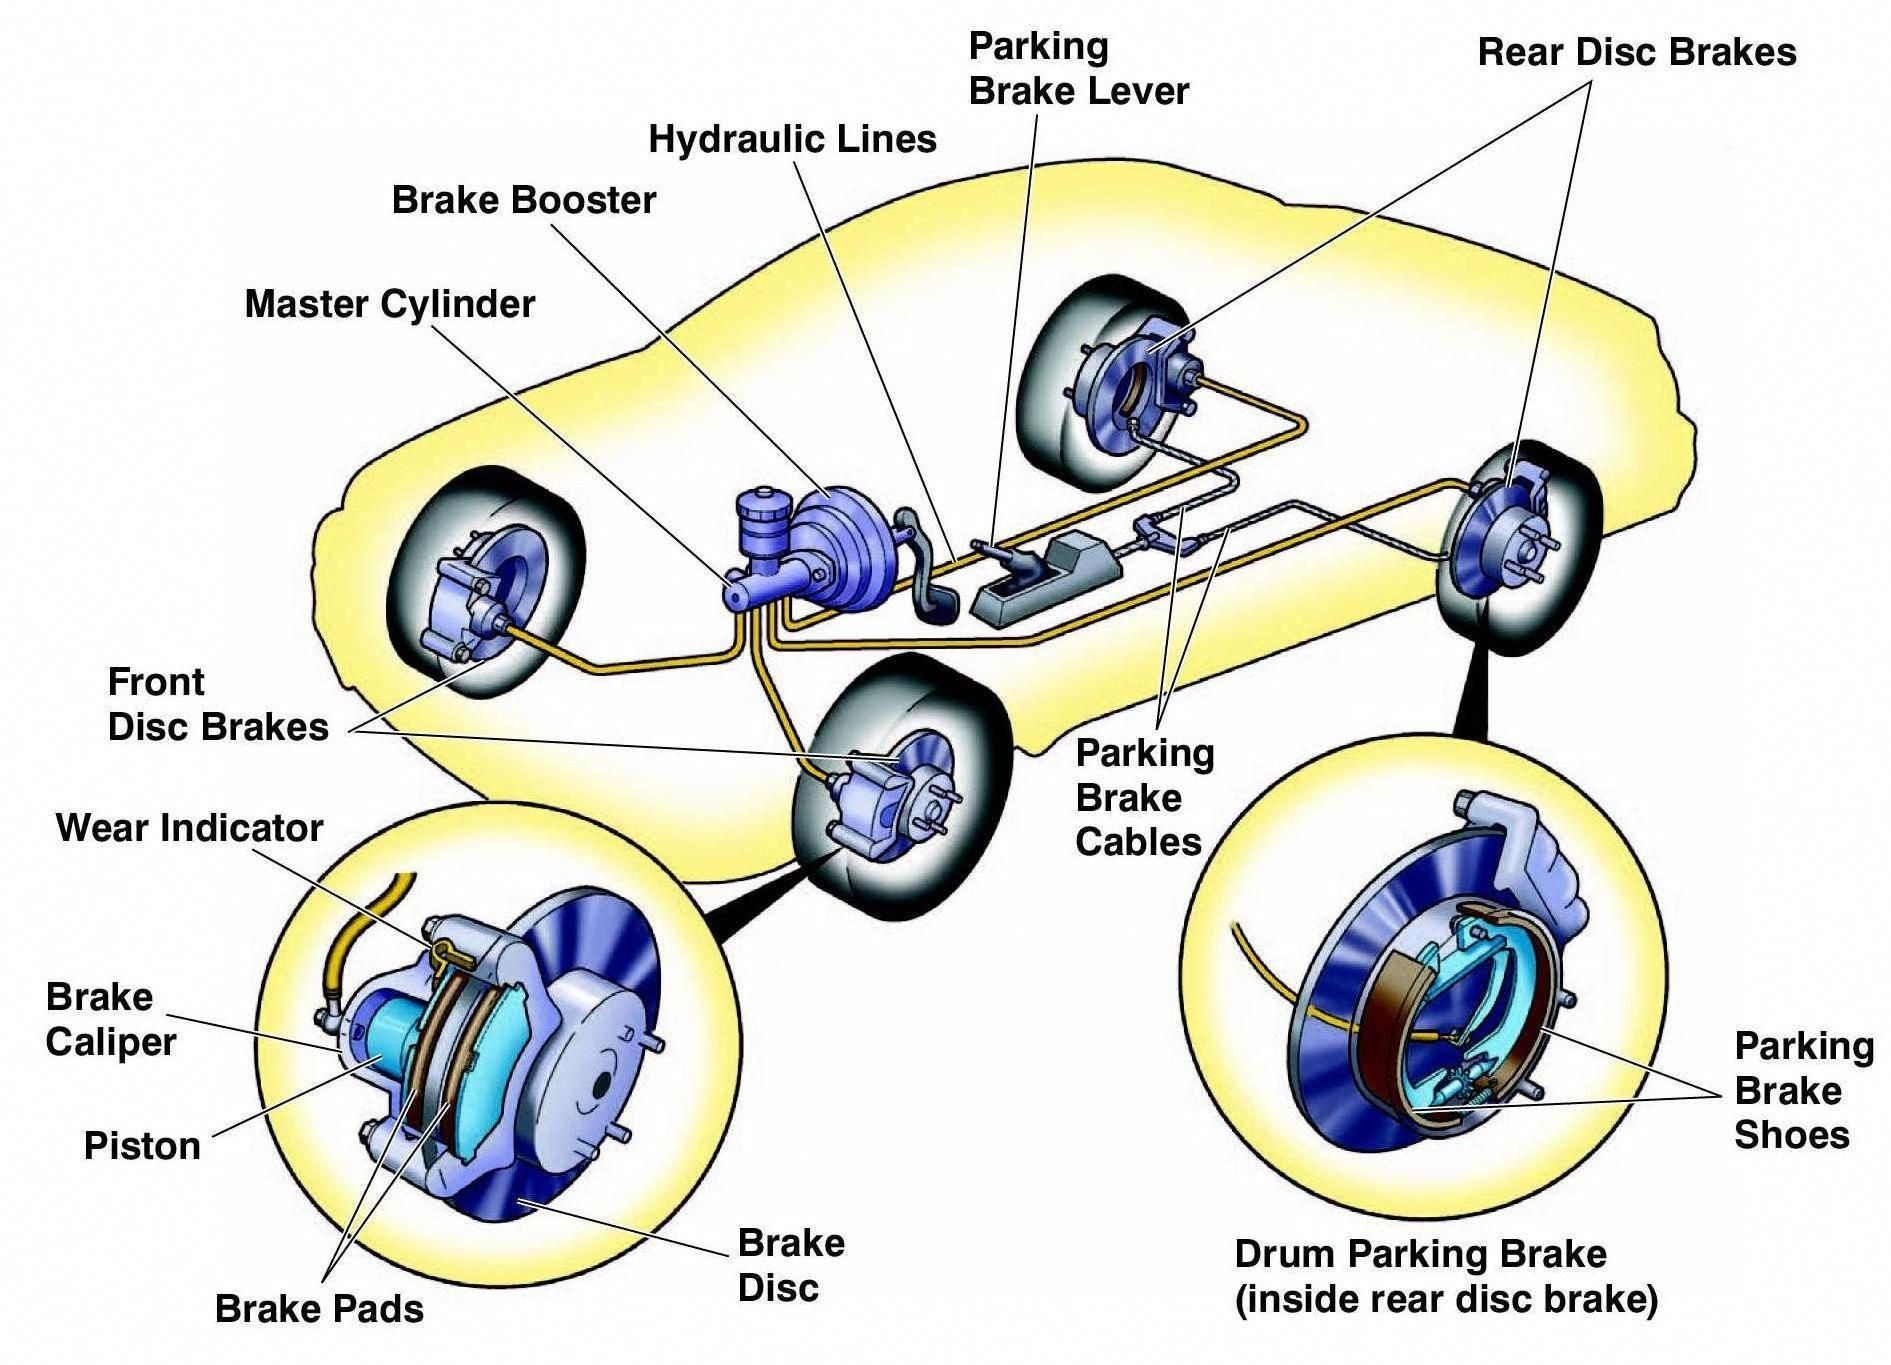 Automobile Parts Diagram Pin by Twenty Four Diagnostics On Car Care Repair and Maintenance Of Automobile Parts Diagram √ Awesome toyota Parts Barn